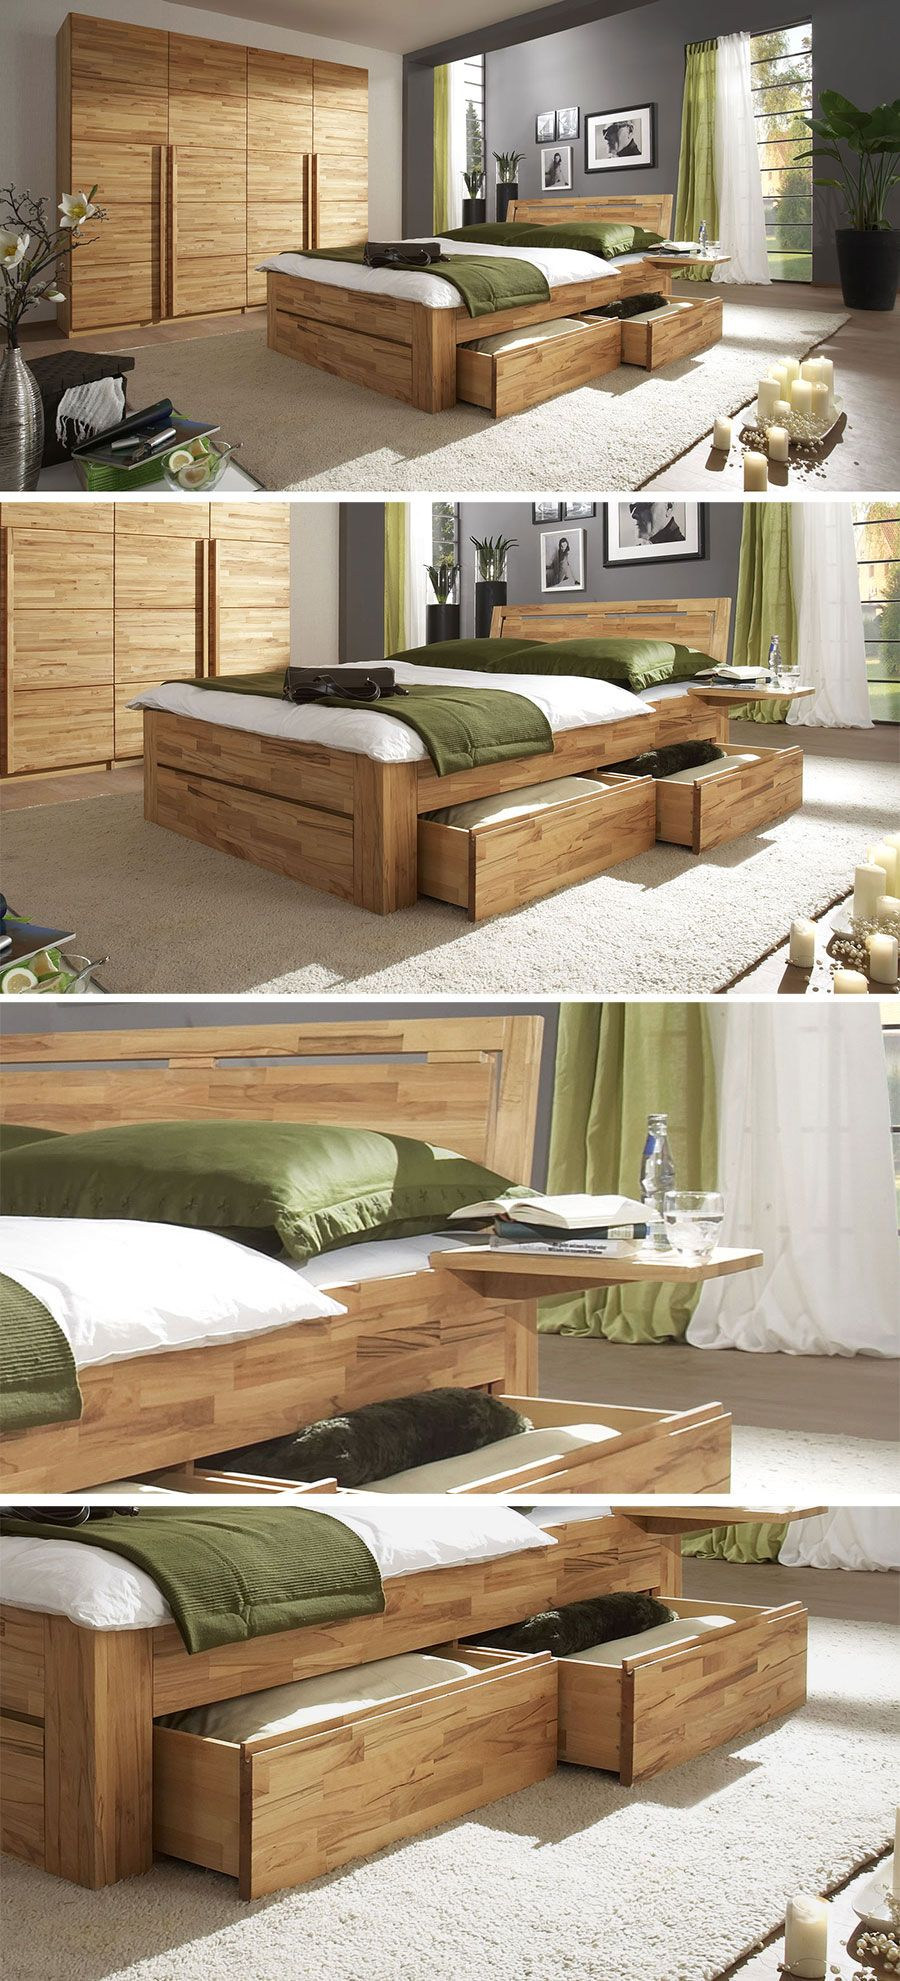 Schlafzimmer Kernbuche Pin By Mukesh Duggal On Storage Beds Pinterest Bedroom Bed